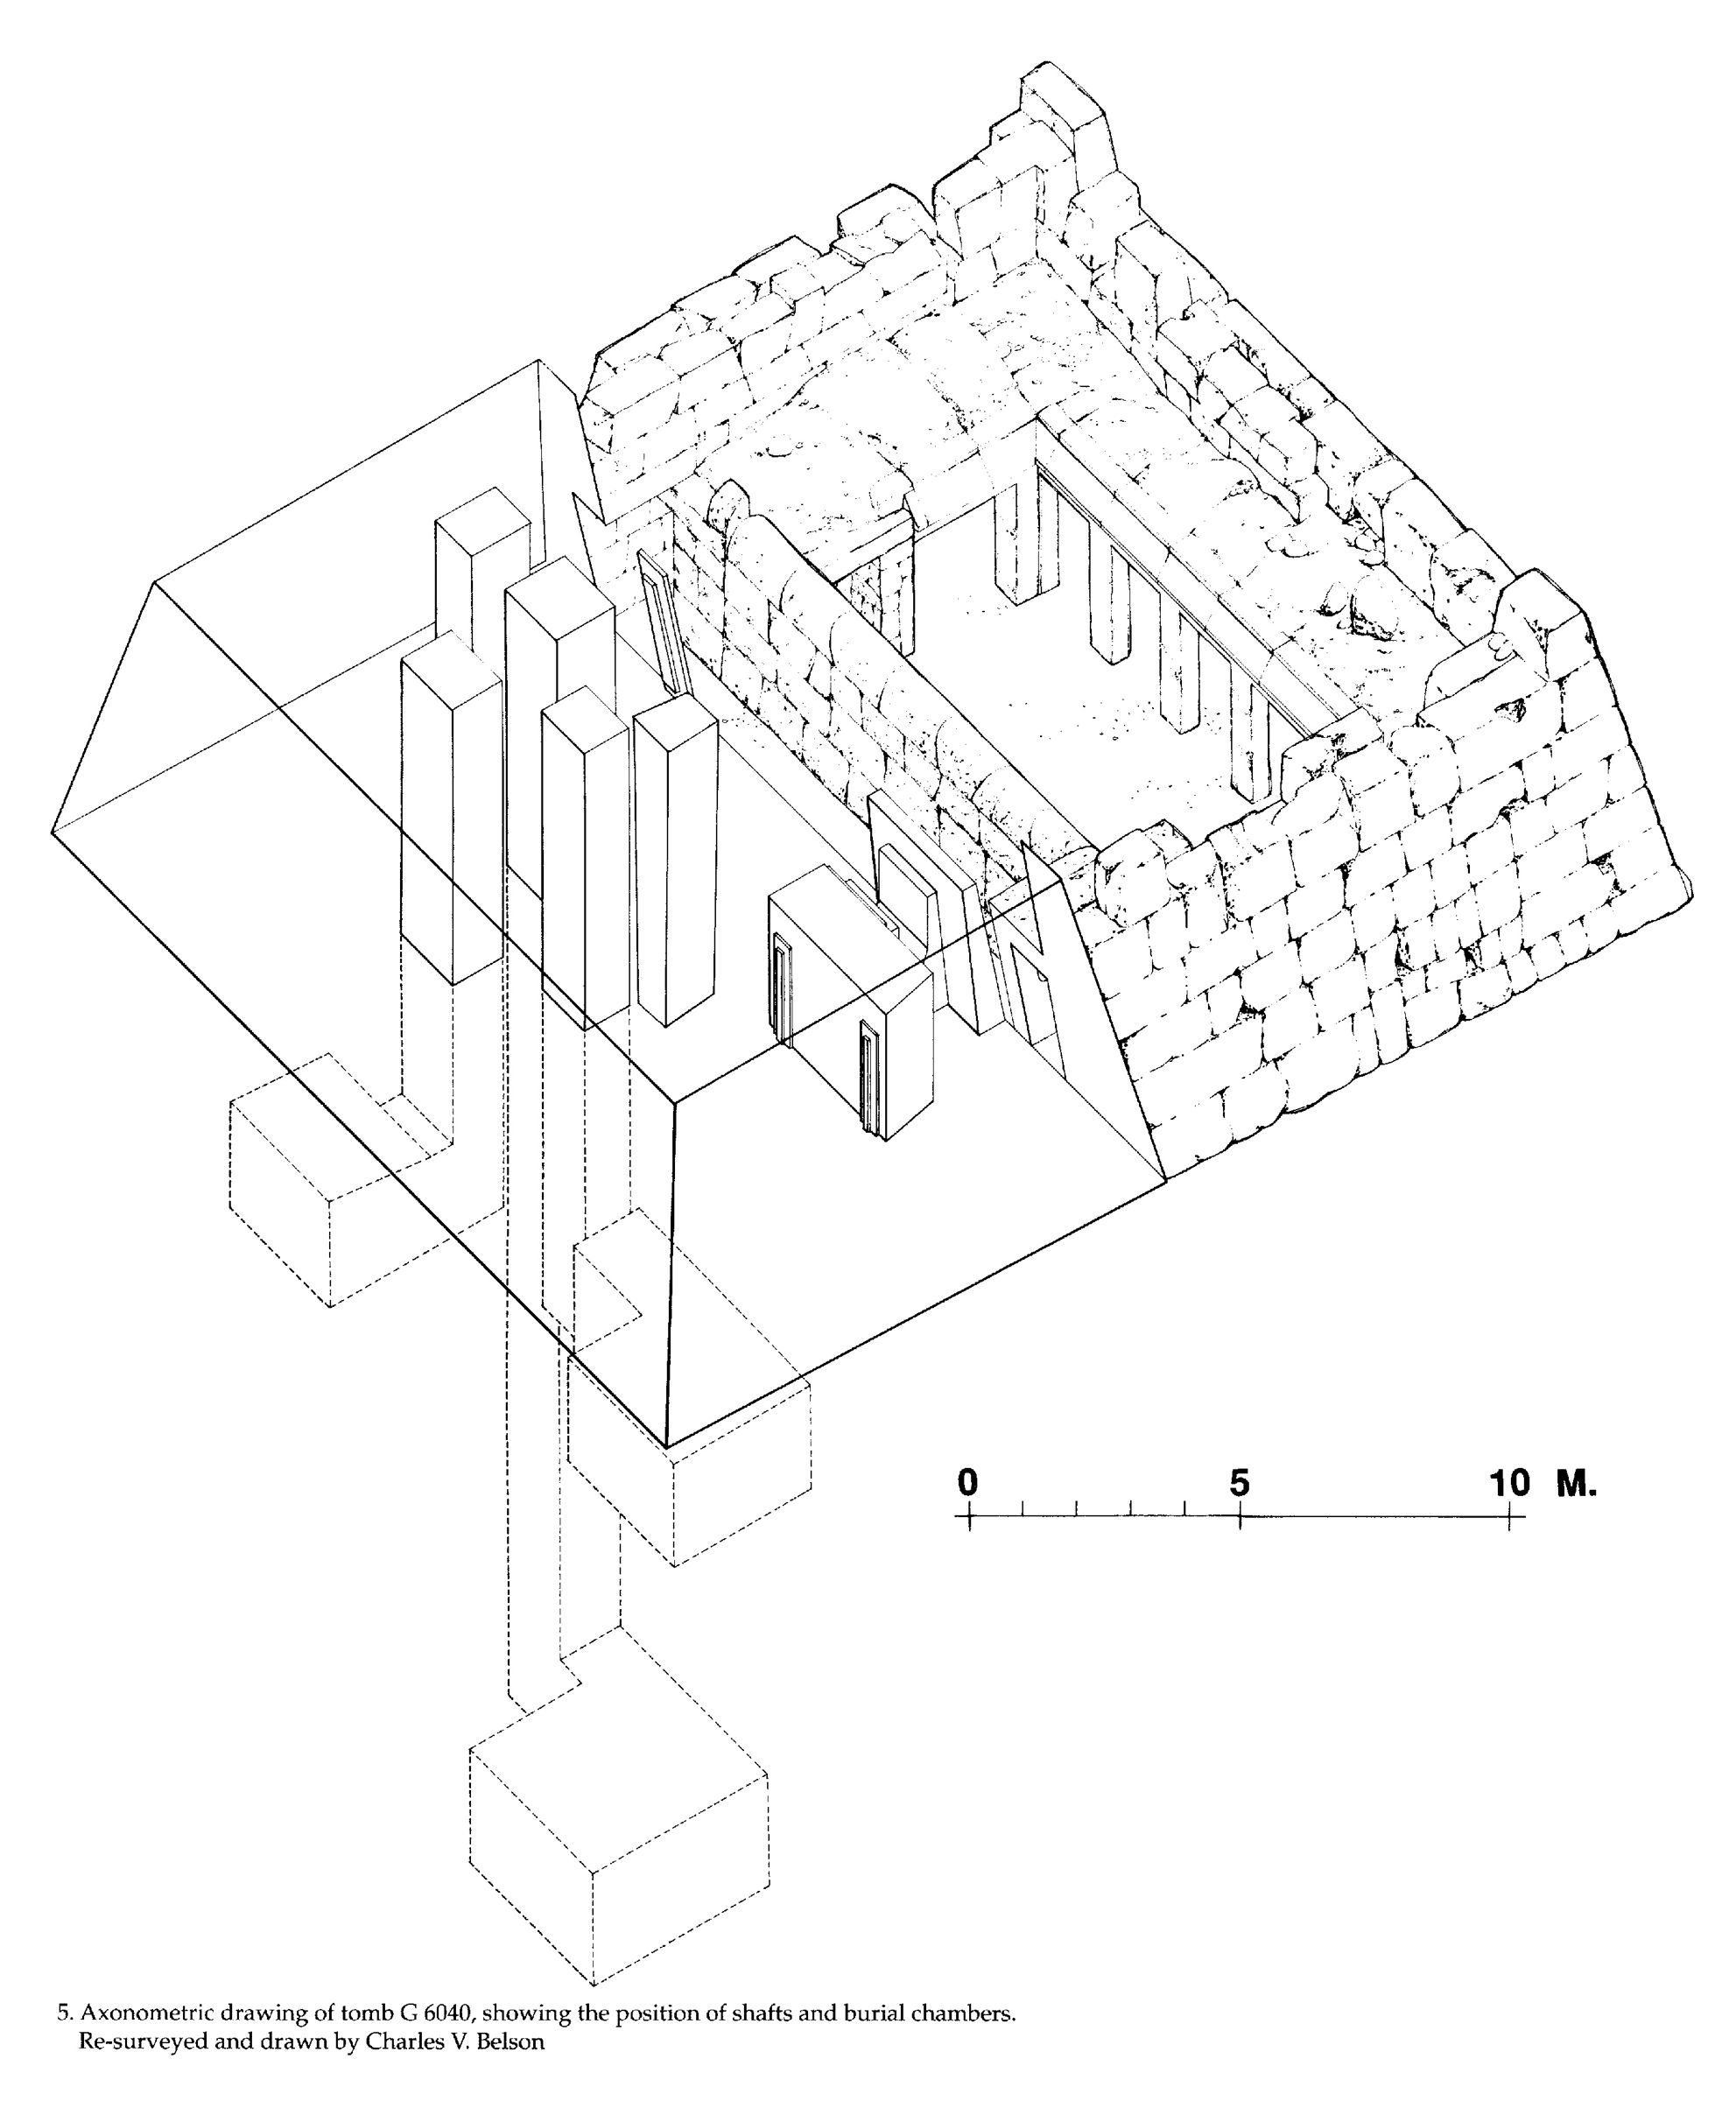 Maps and plans: G 6040, Axonometric drawing